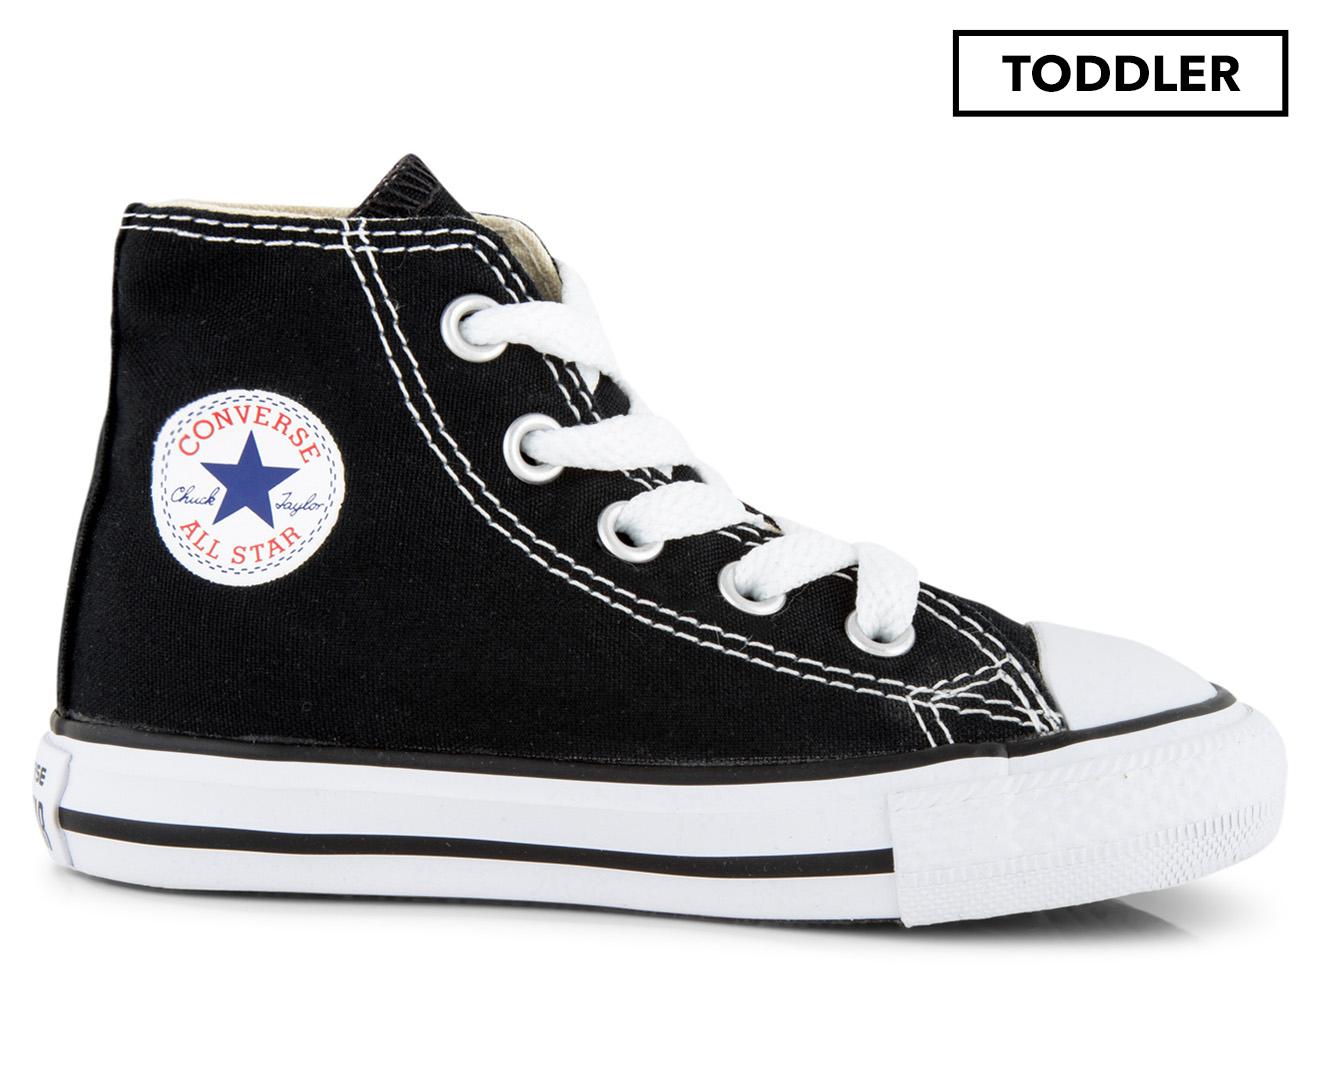 Details about Converse Toddler Chuck Taylor All Star High Top Shoe Black